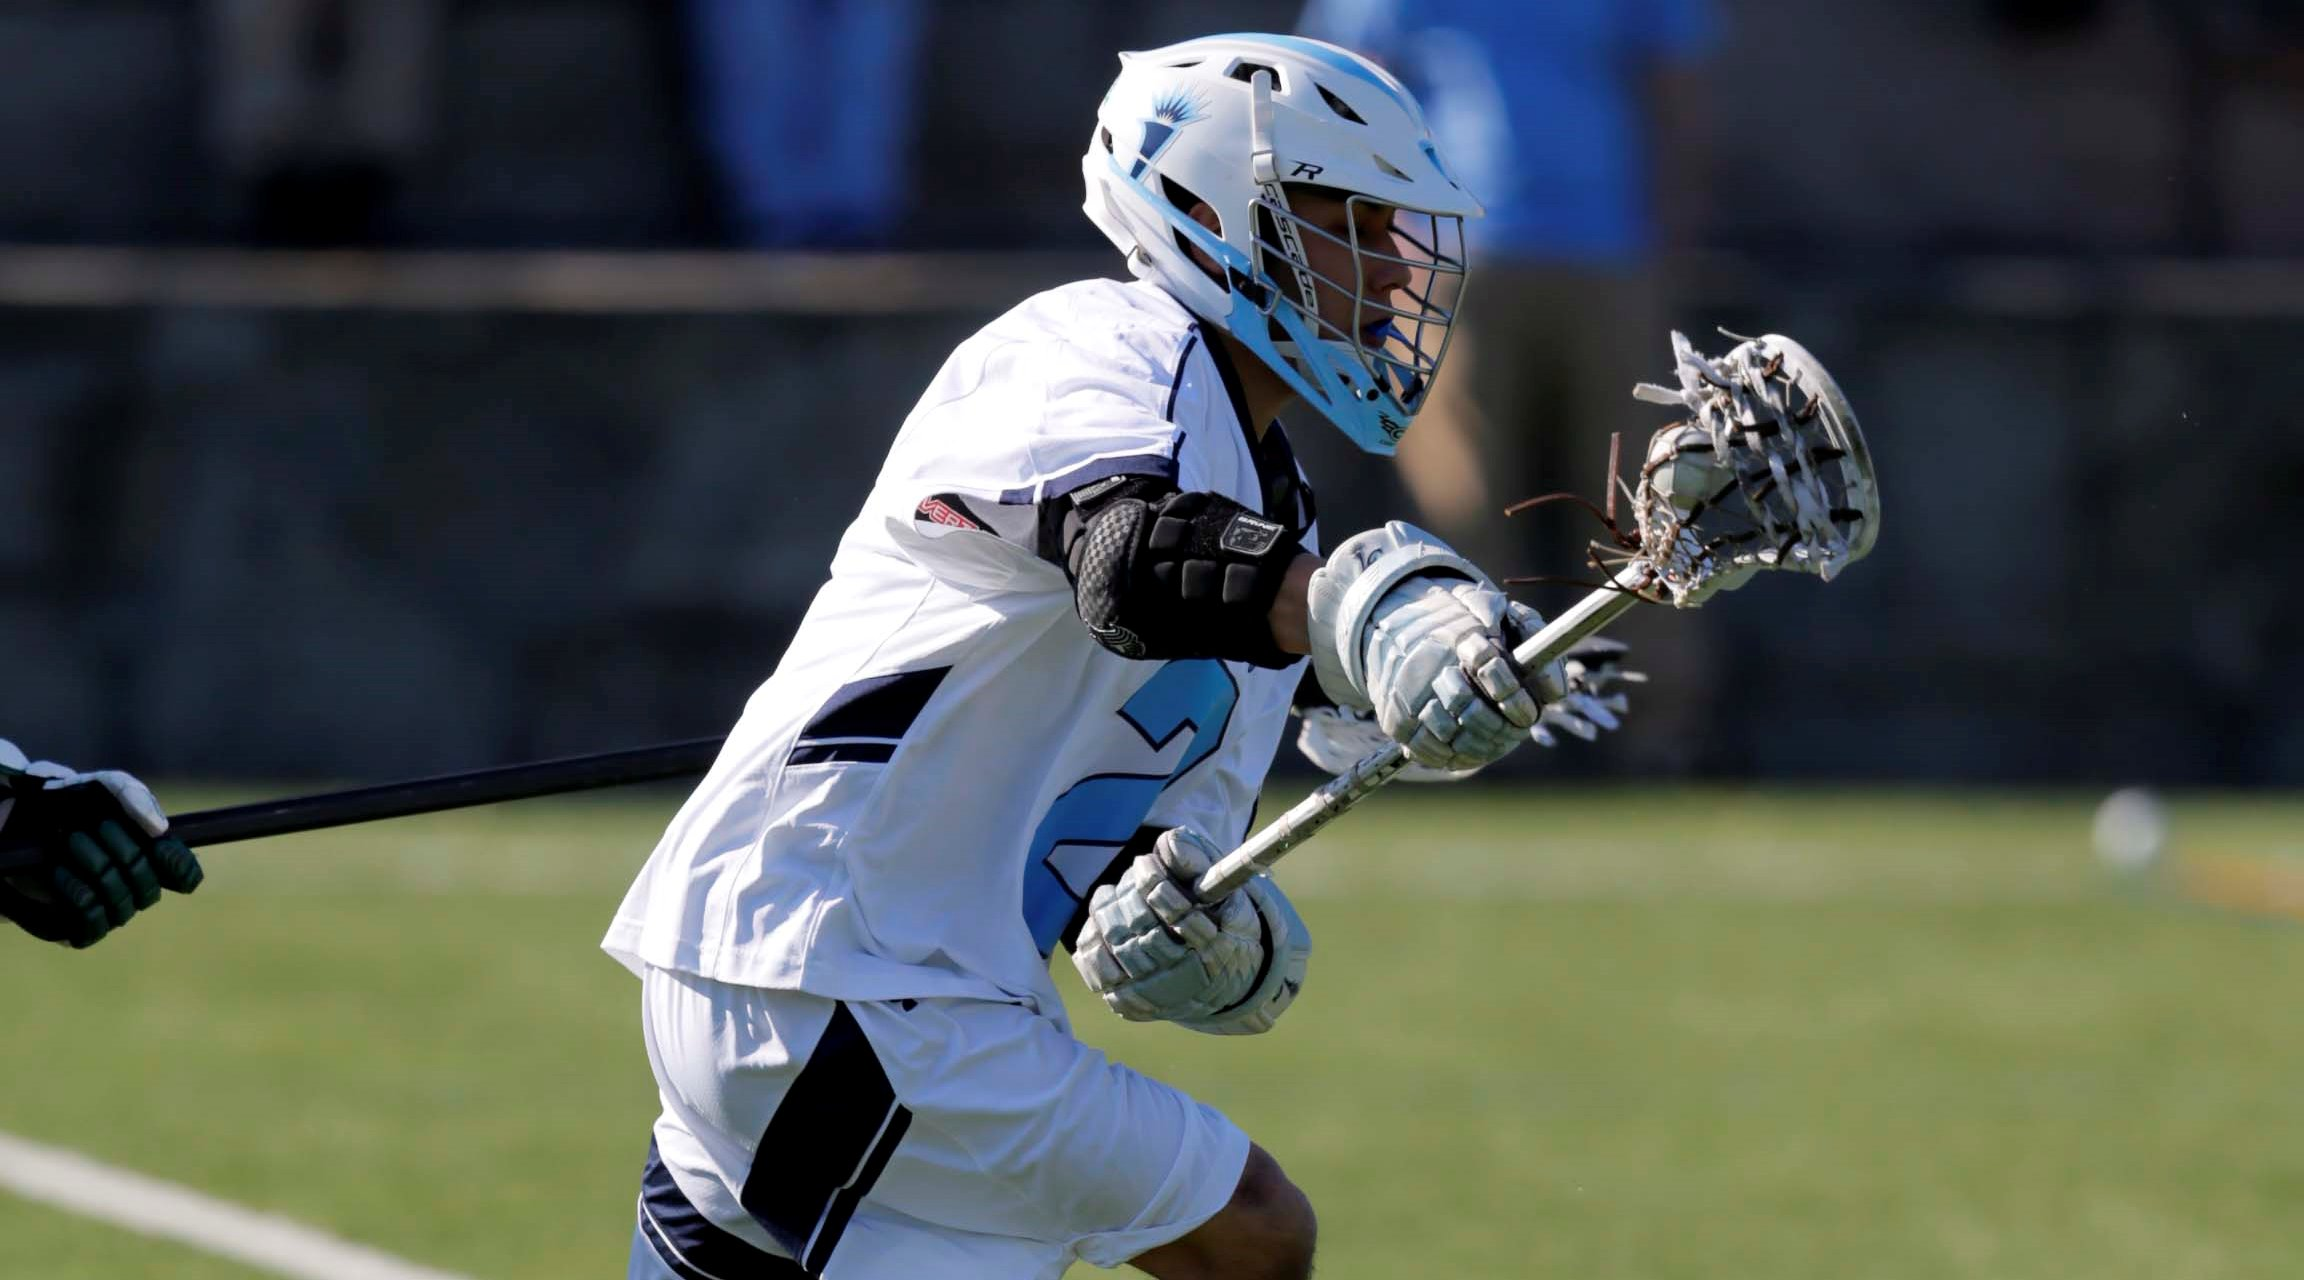 Men's Lacrosse Nipped in in GNAC Semifinals on Late Becker Goal